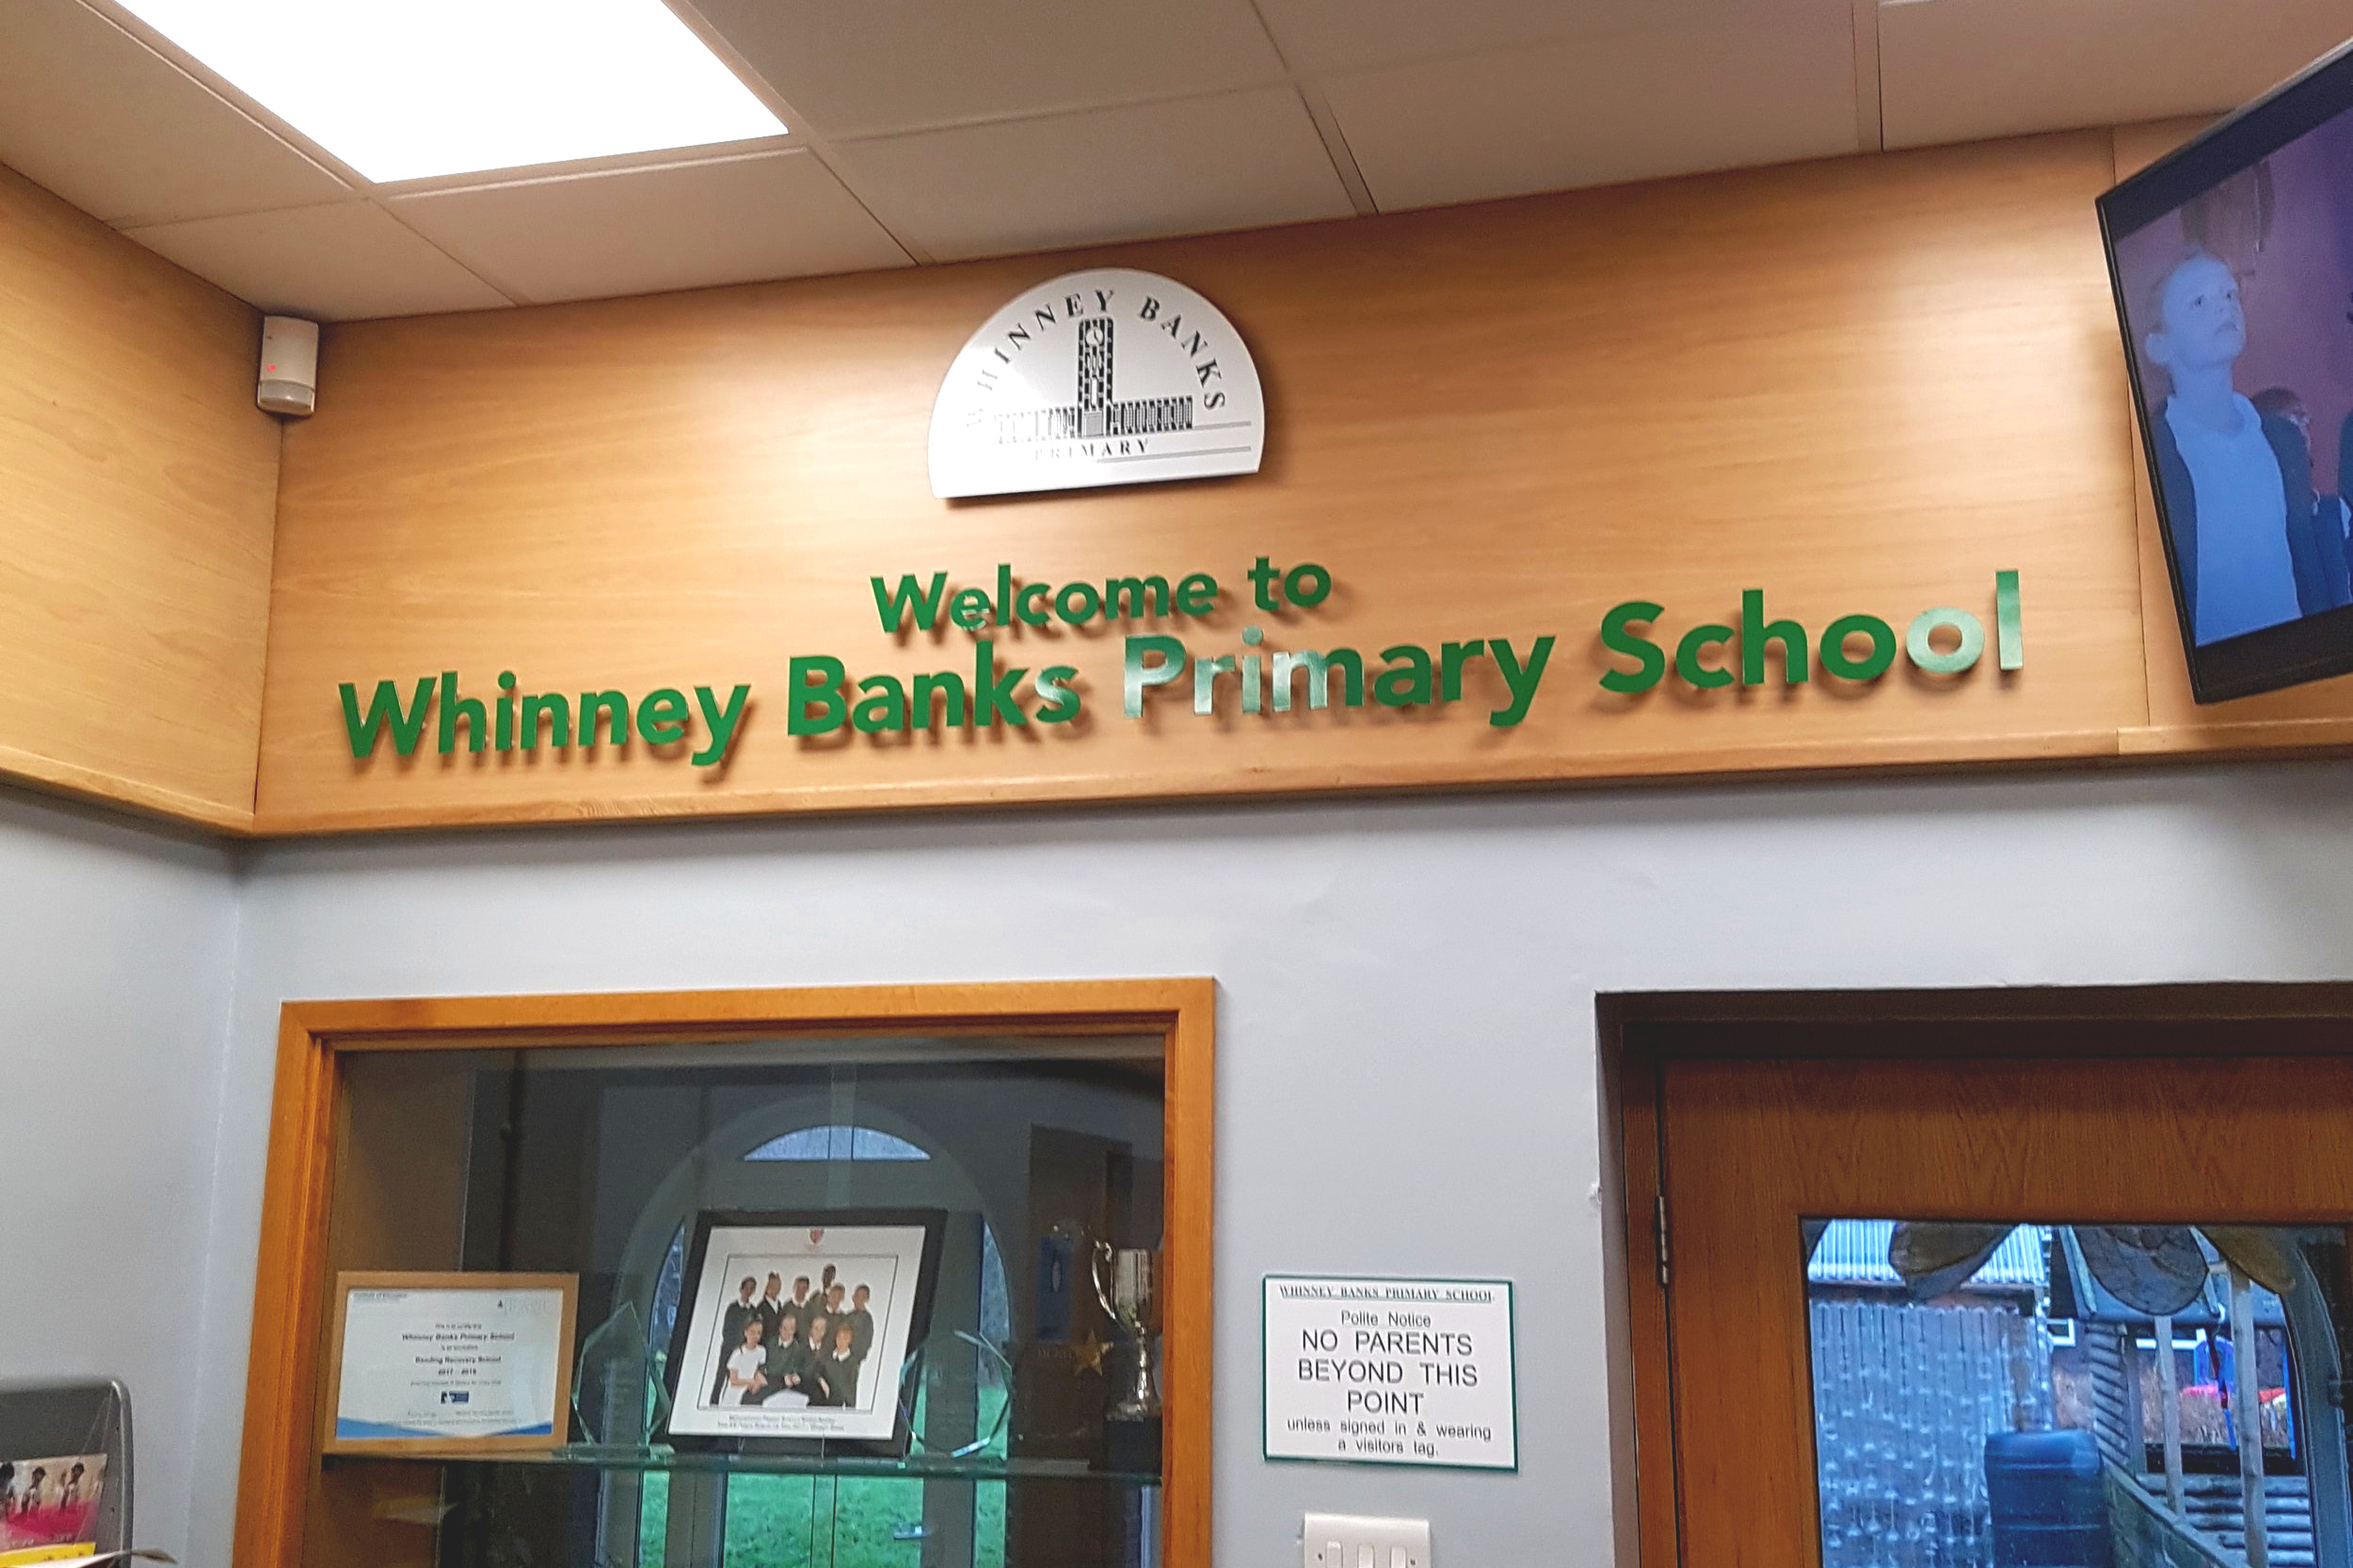 Whinney Banks Primary